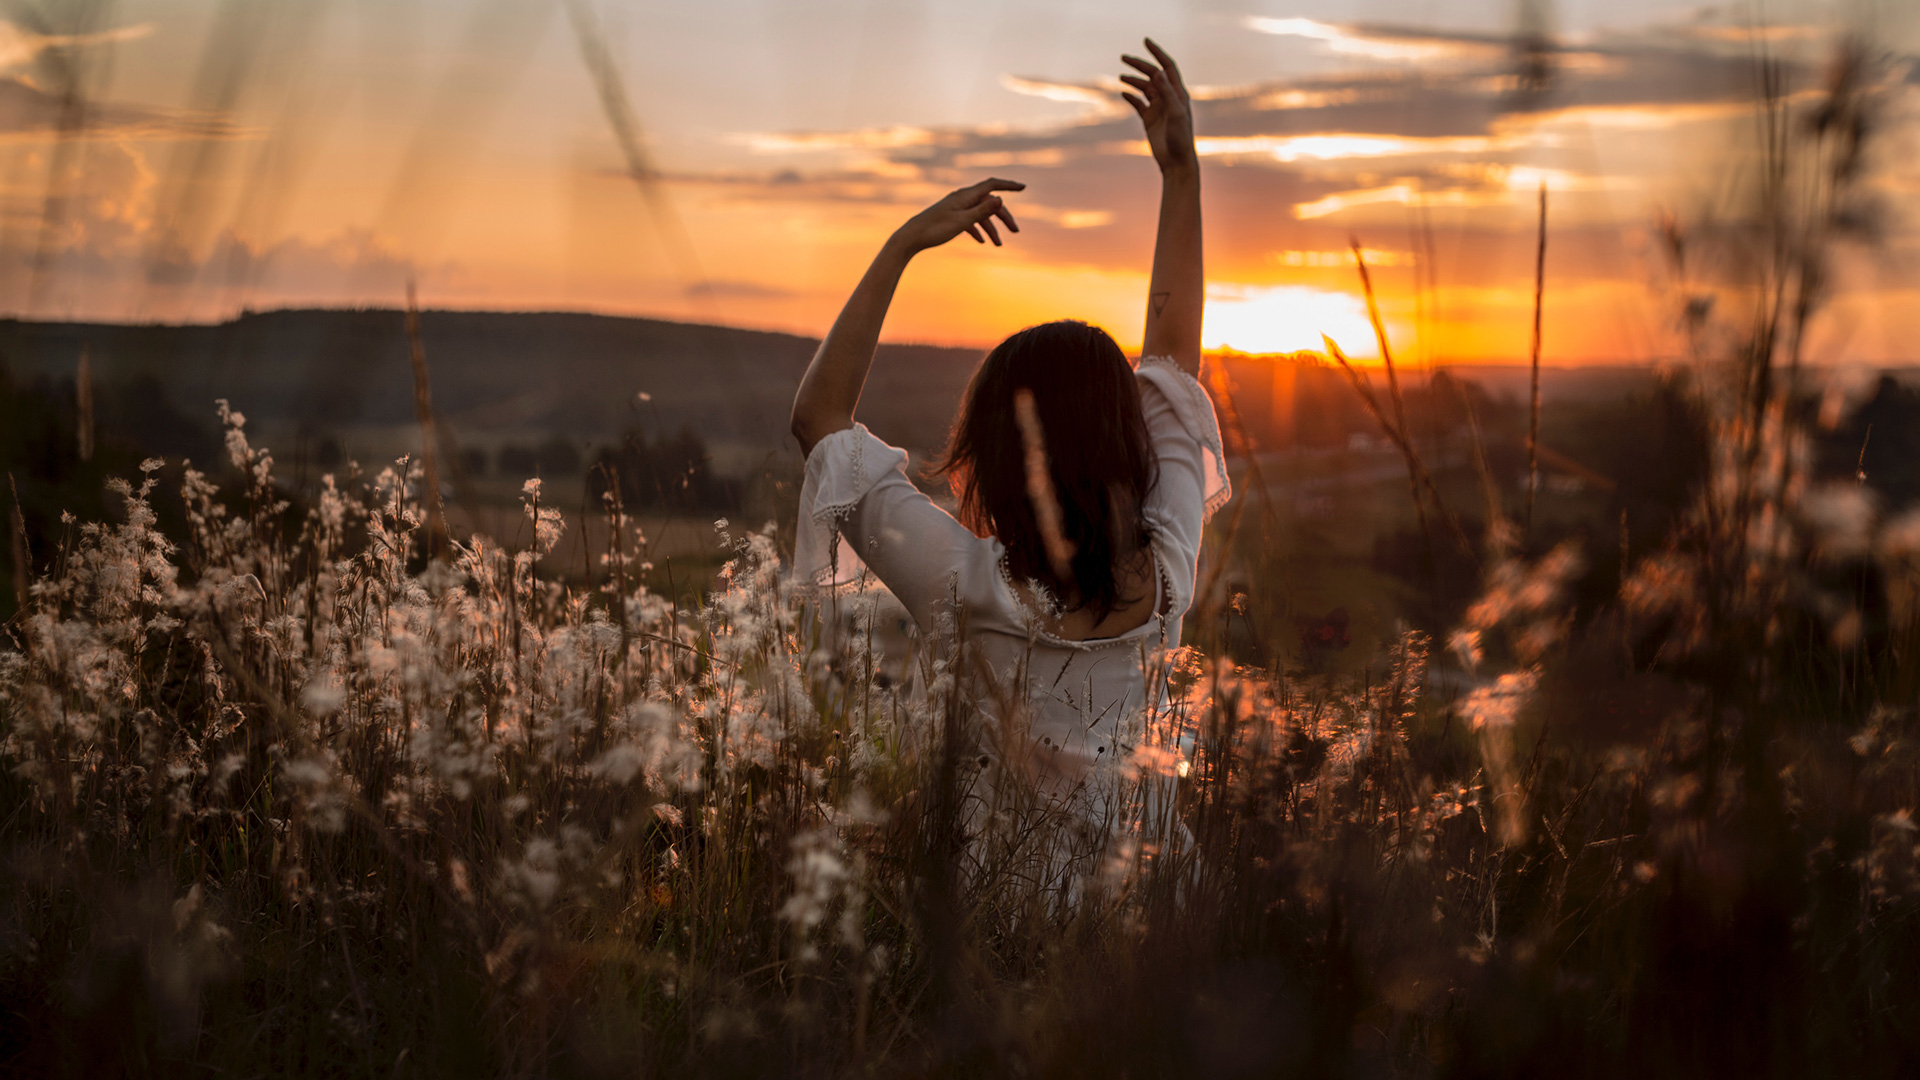 woman-wearing-white-dress-raising-her-two-hands-surrounded-white-petaled-flowers-during-sunset